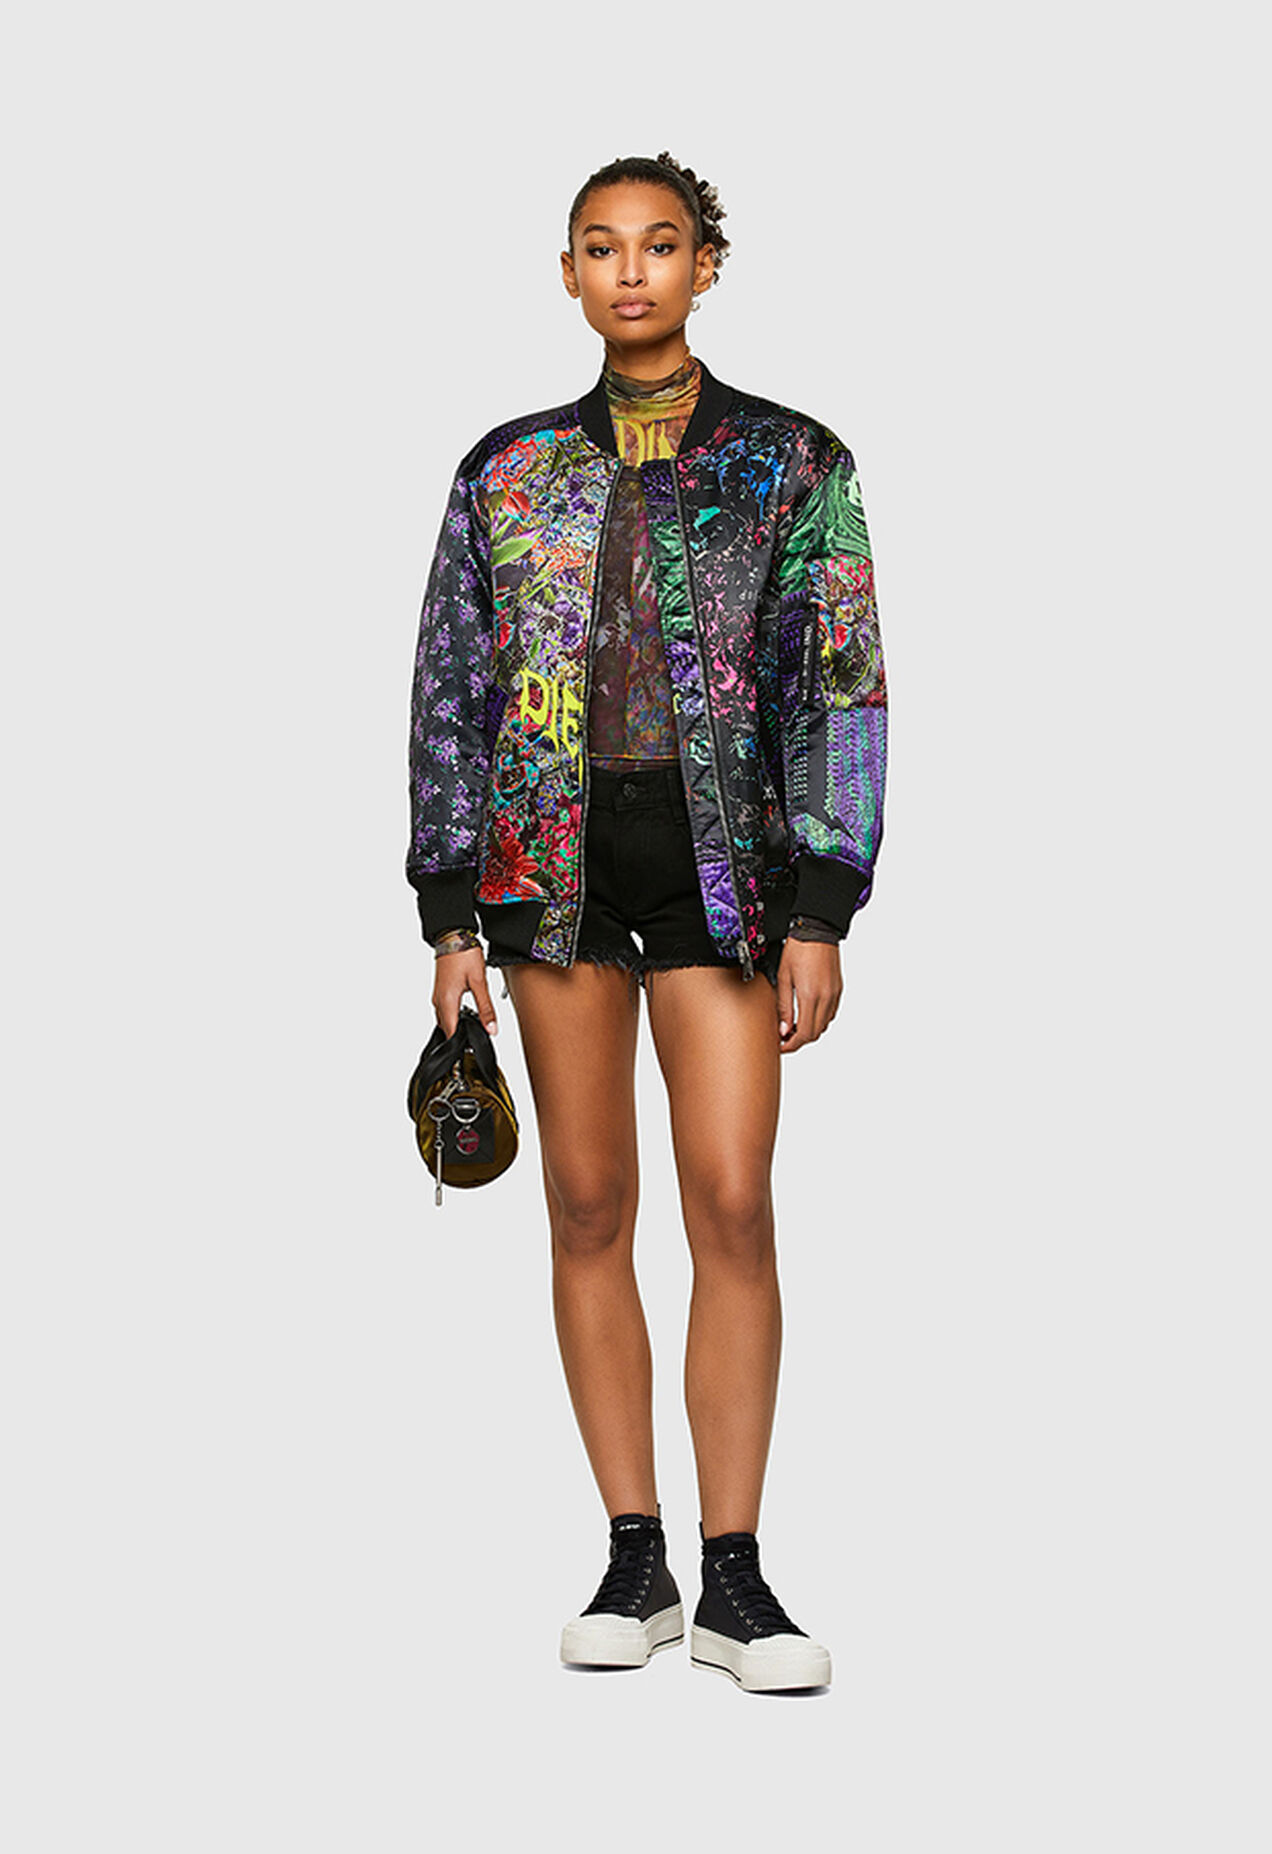 https://de.diesel.com/dw/image/v2/BBLG_PRD/on/demandware.static/-/Library-Sites-DieselMFSharedLibrary/default/dwc54ea75b/CATEGORYOV/2x2_KITTY_JACKET_PATCHWORK_A01611_0GBAY_9XXA_C.jpg?sw=1272&sh=1854